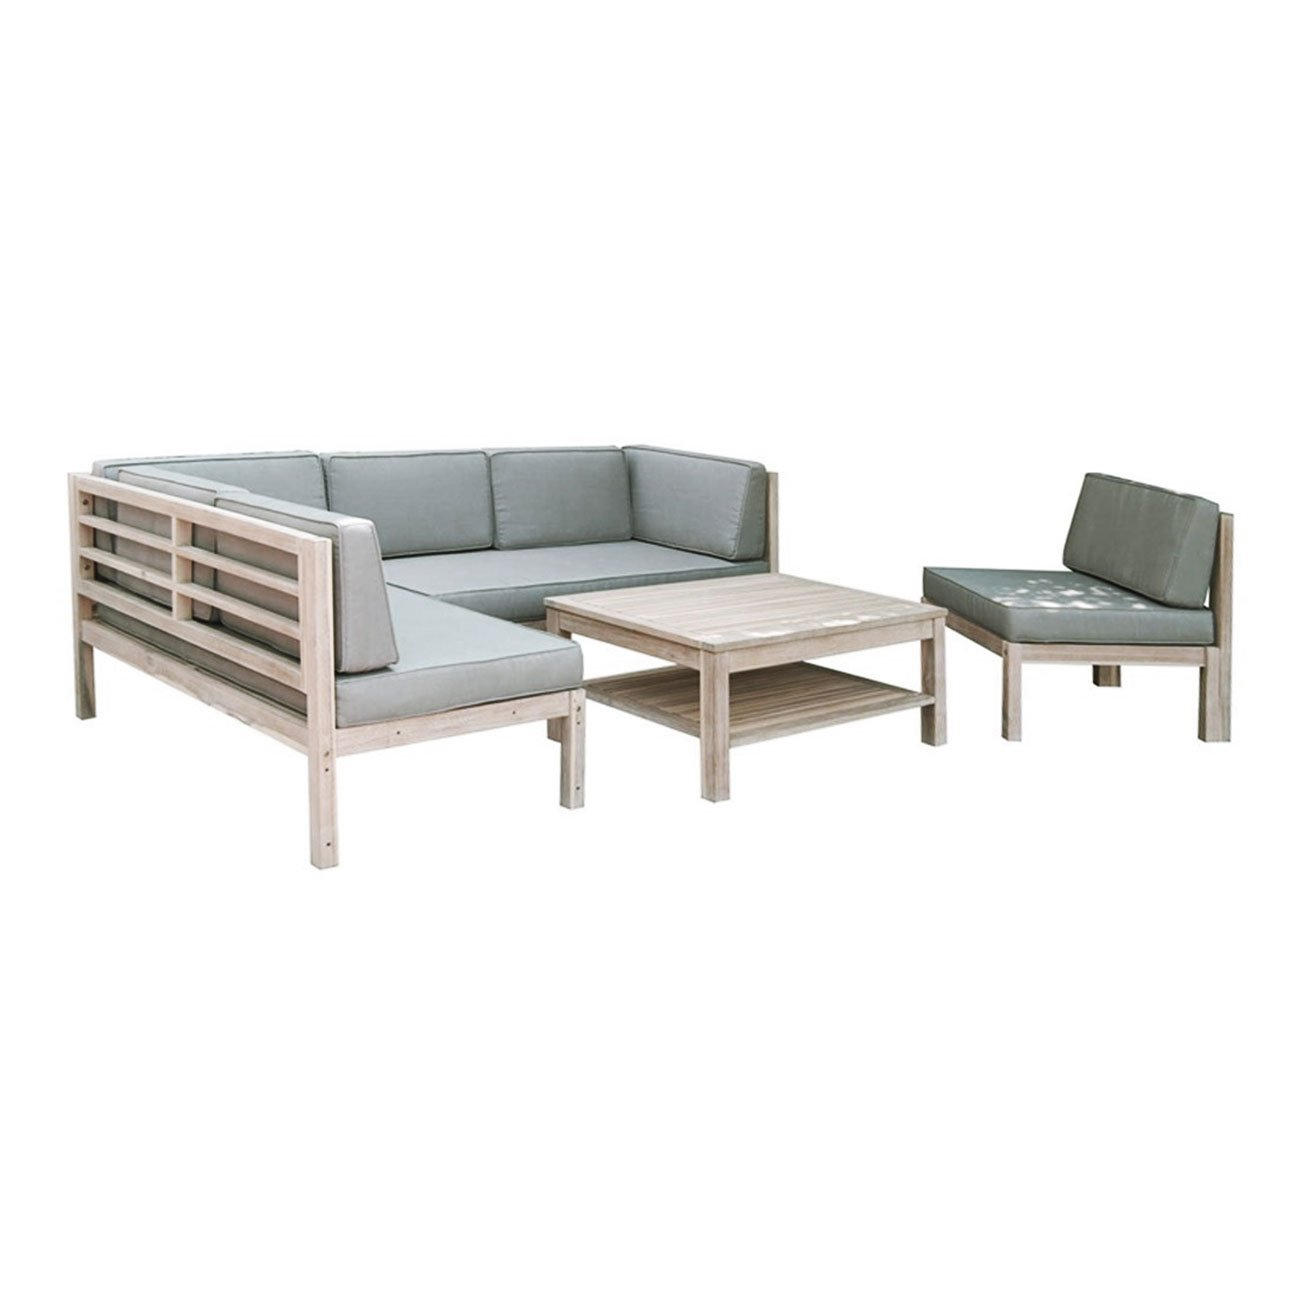 Loungemöbel Holz Outdoor : loungem bel holz outliv skagen loungegruppe design gartenm bel wei taupe 4tlg loungeset ~ Watch28wear.com Haus und Dekorationen